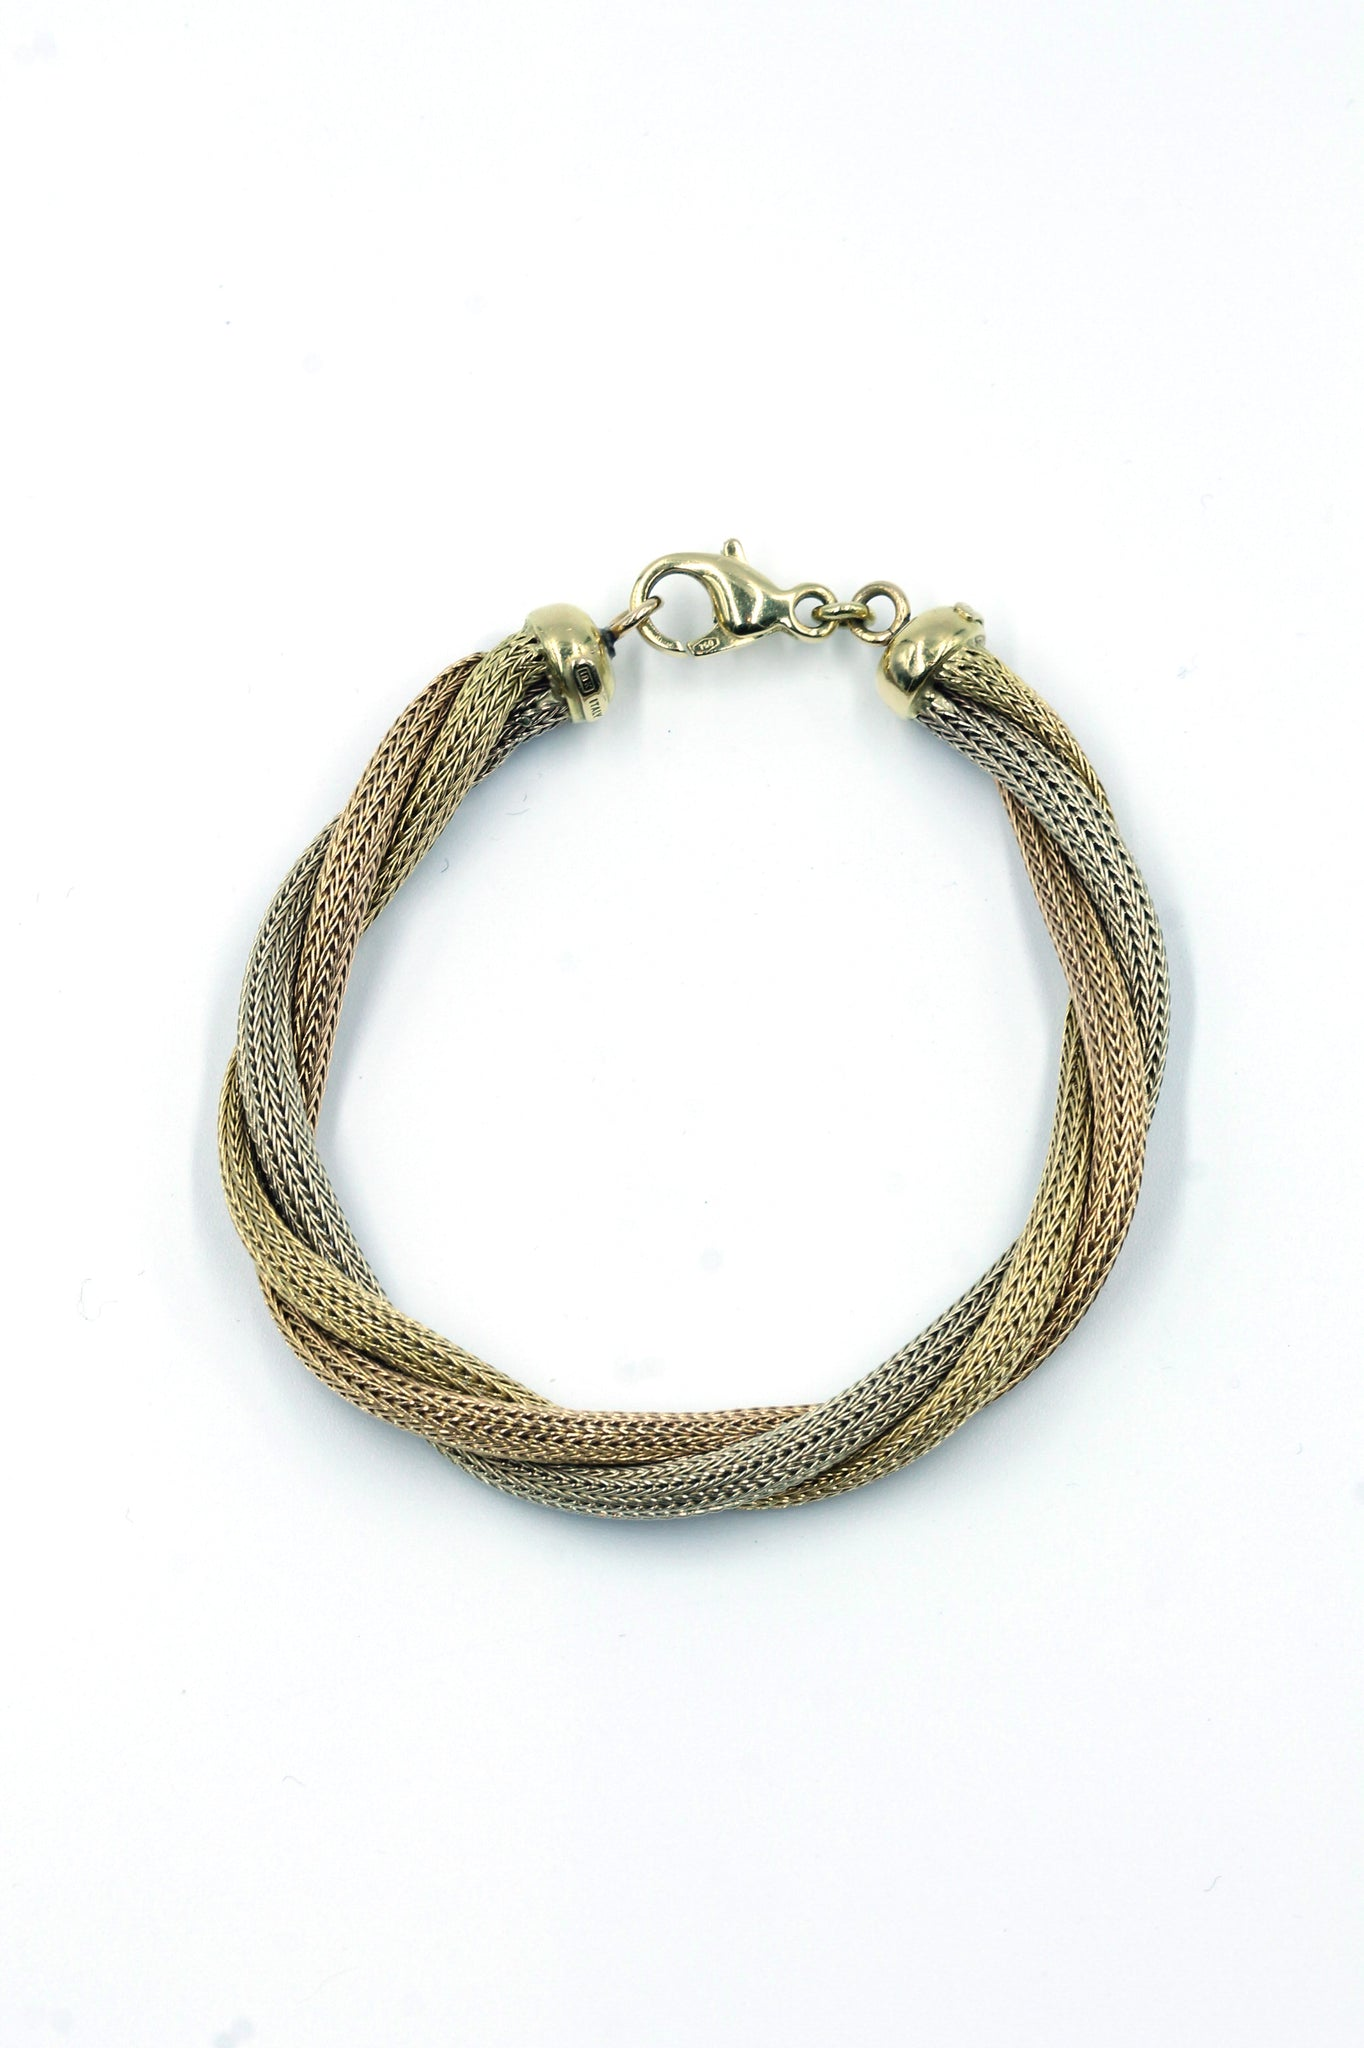 Vintage 18k Tri-Color Gold Bracelet, SOLD